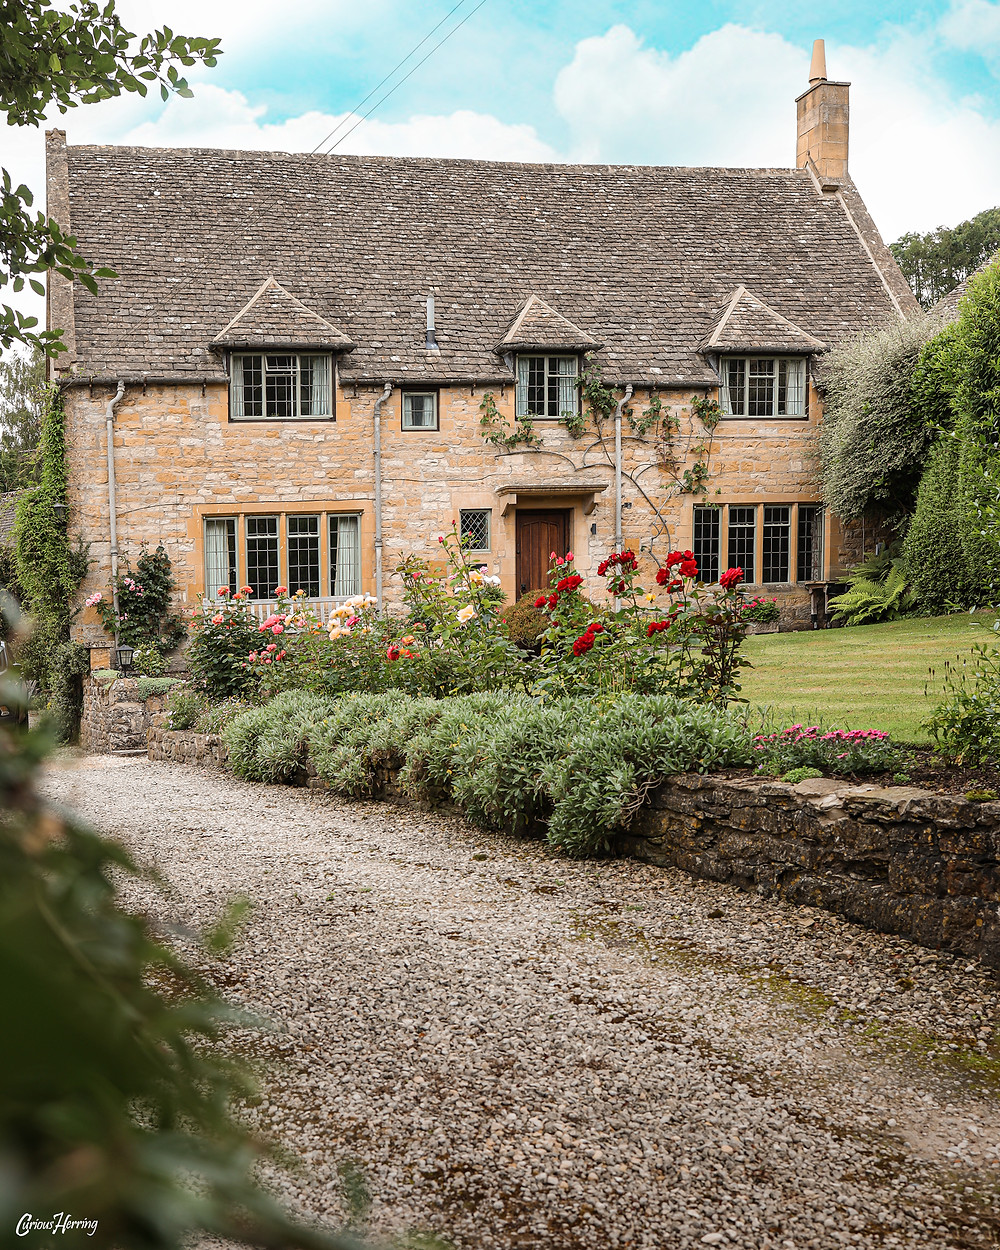 A cottage house surrounded by flowers and vined roses in Snowshill, Cotswolds.